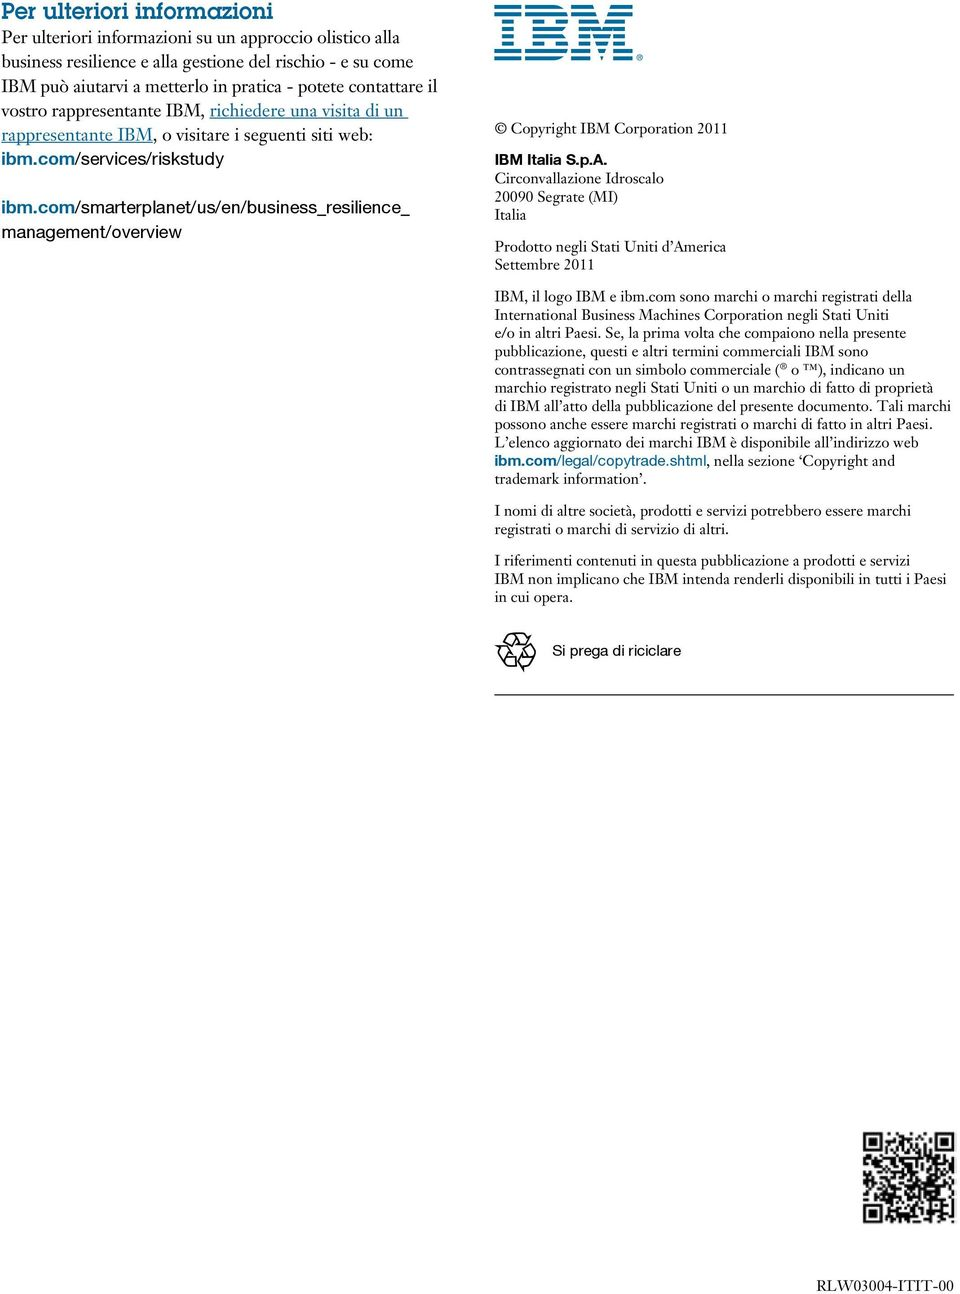 com/smarterplanet/us/en/business_resilience_ management/overview Copyright IBM Corporation 2011 IBM Italia S.p.A.